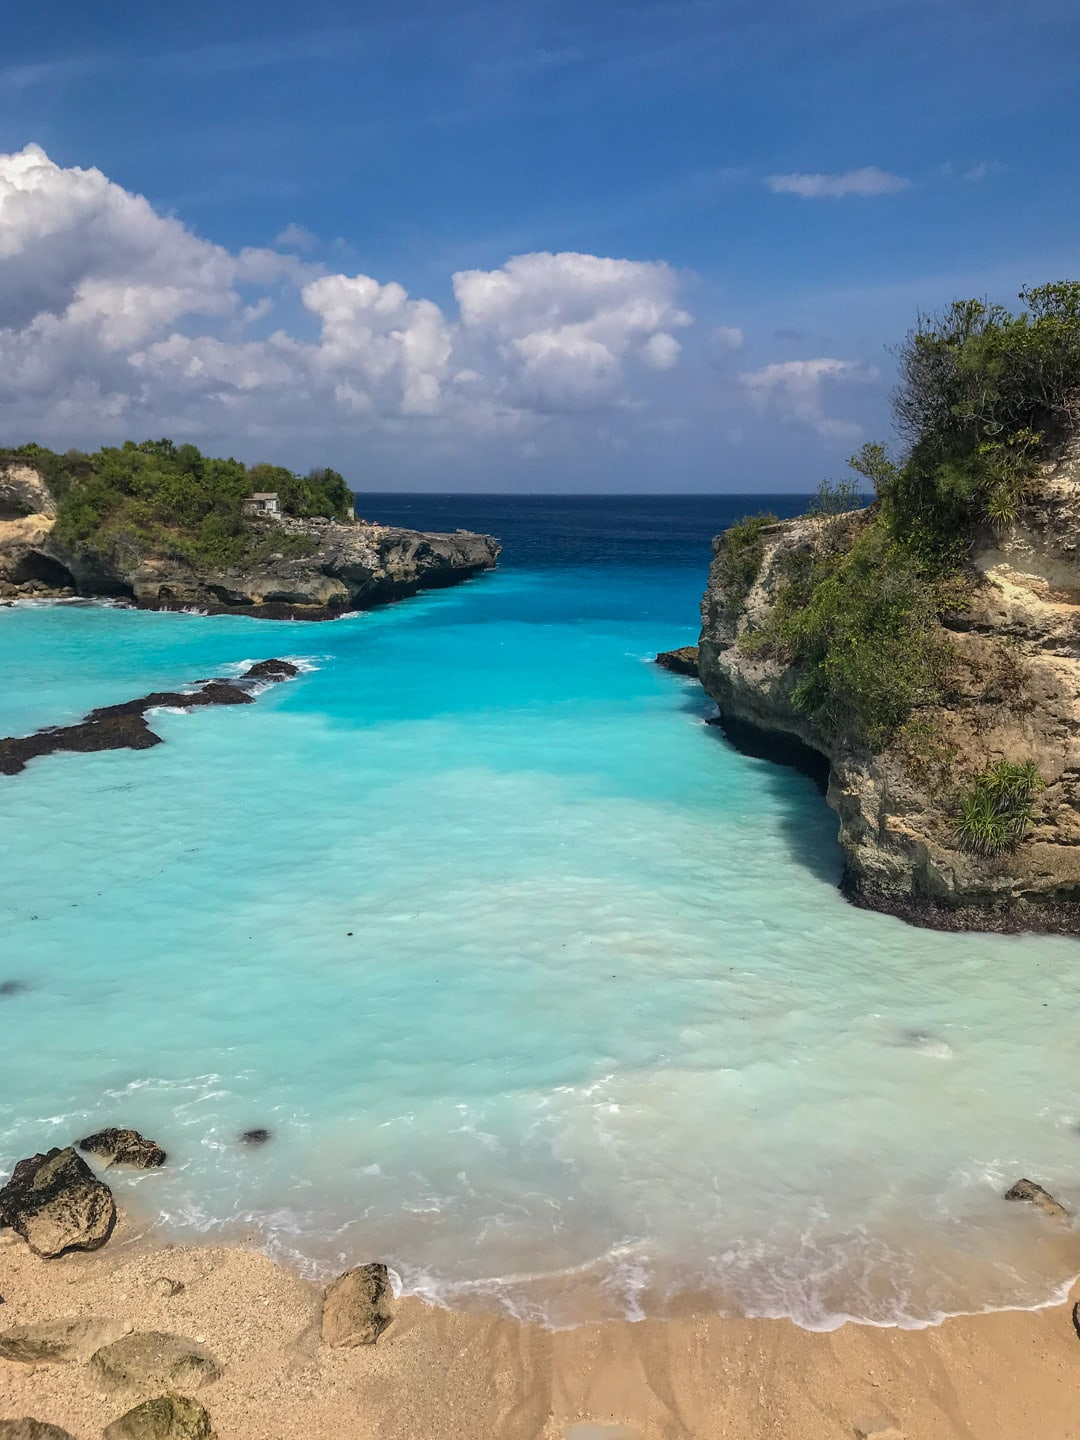 A bright blue lagoon in Ceningan near Lembongan